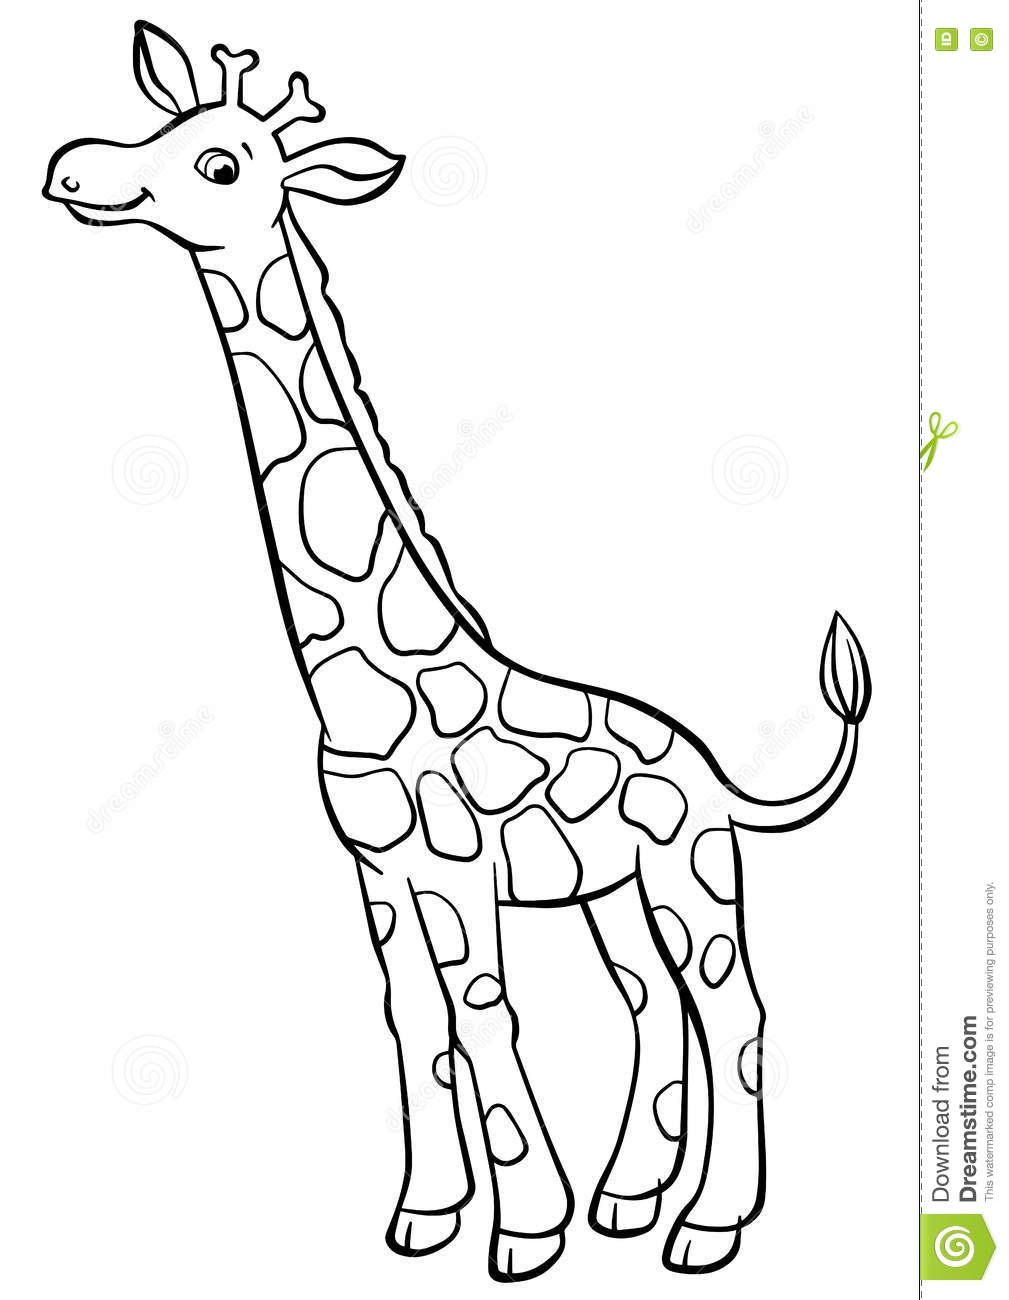 Coloring Pages. Animals. Little Cute Giraffe. Stock Vector ...